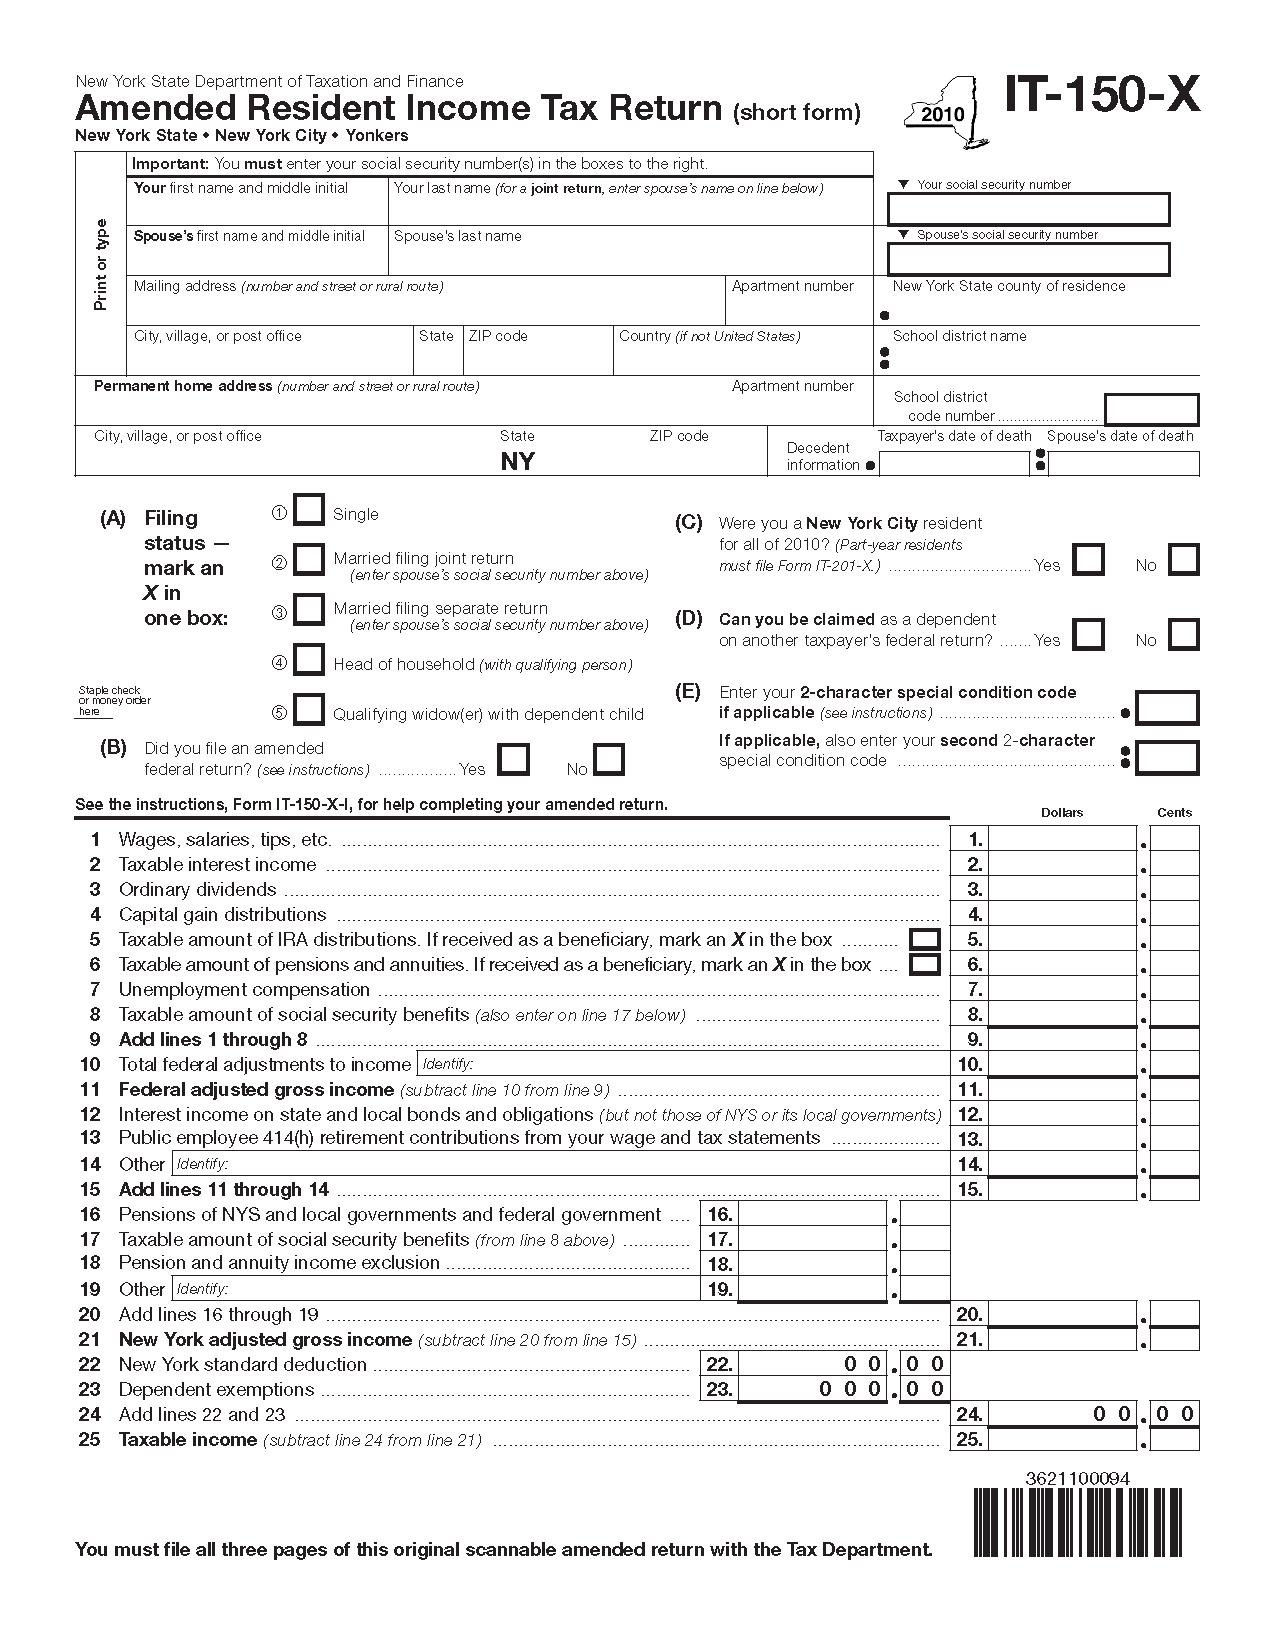 Form IT-150-X (2010) (Fill-in) Amended Resident Income Tax Return ...